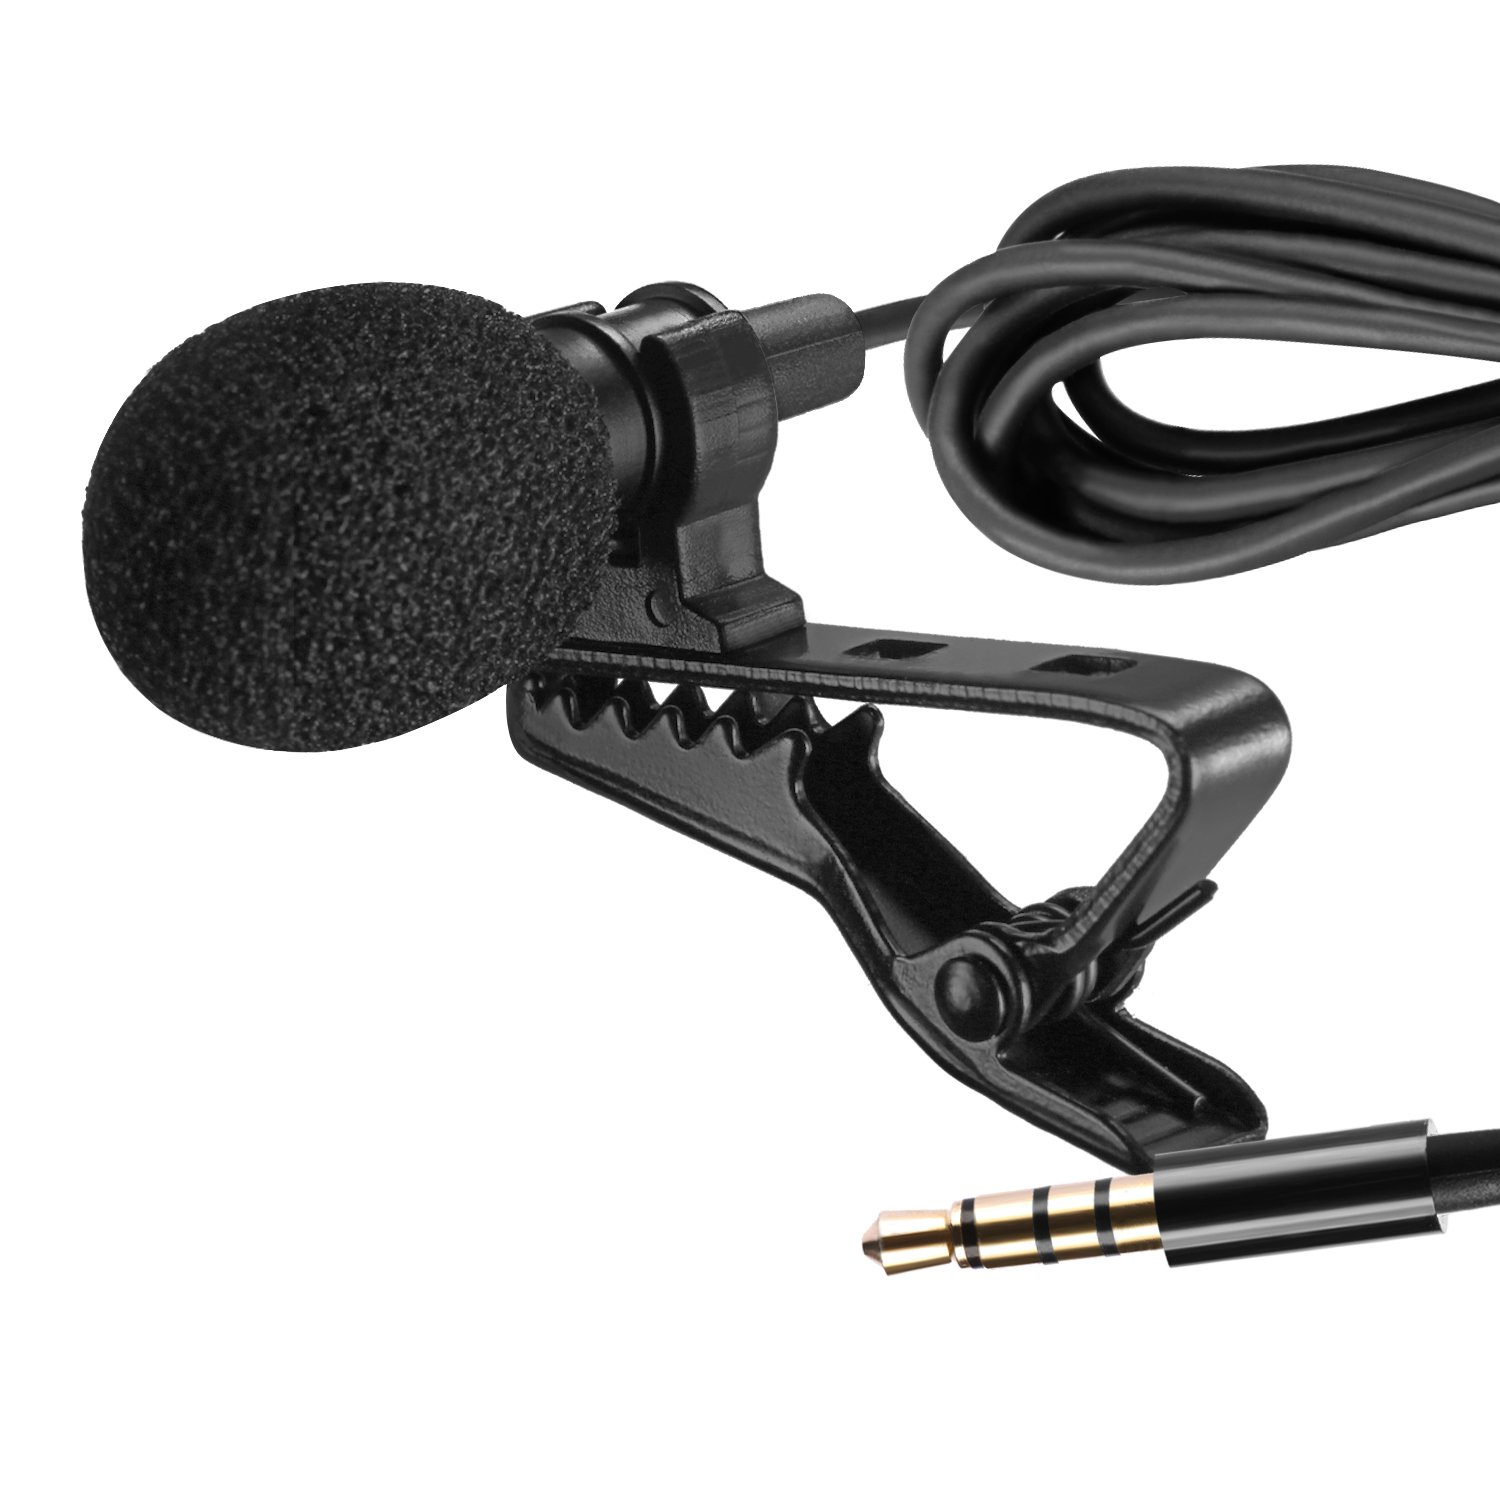 Neewer Lavalier Recording Condenser Mic, Mini Hands Free Clip-on Lapel Compatible with Apple iPhone Android & Windows Smartphones, Youtube, Stage Performance, Video Recording, Live Streaming 40093431